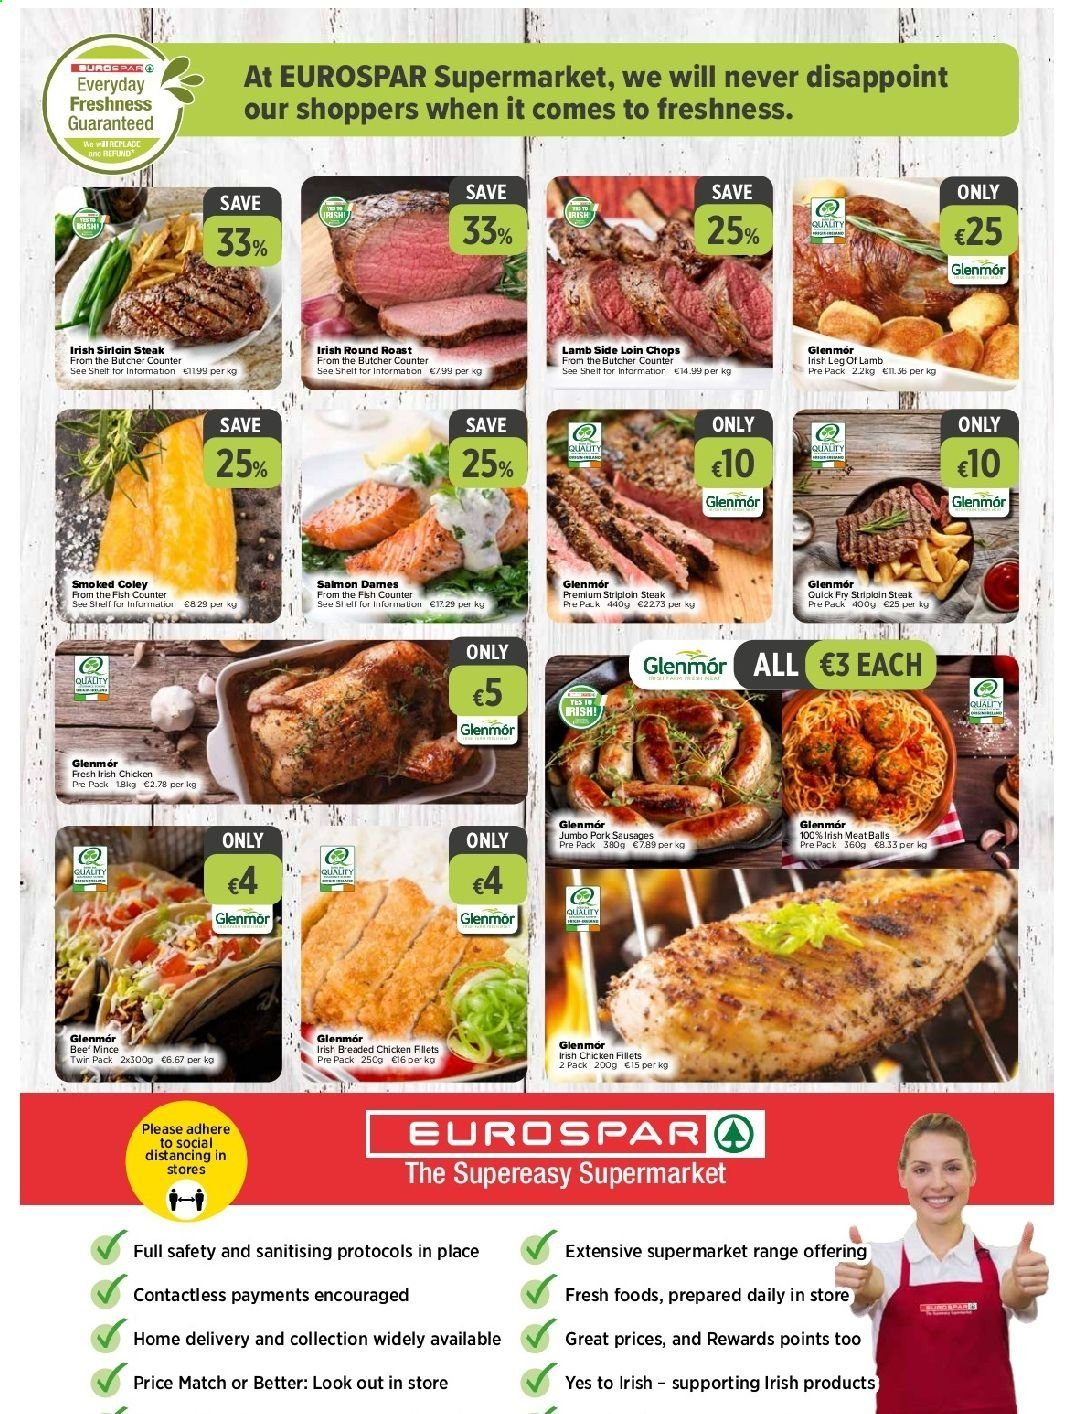 EUROSPAR offer  - 10.9.2020 - 30.9.2020 - Sales products - lamb meat, salmon, chicken, meatballs, steak, fish, lamb, roast. Page 2.